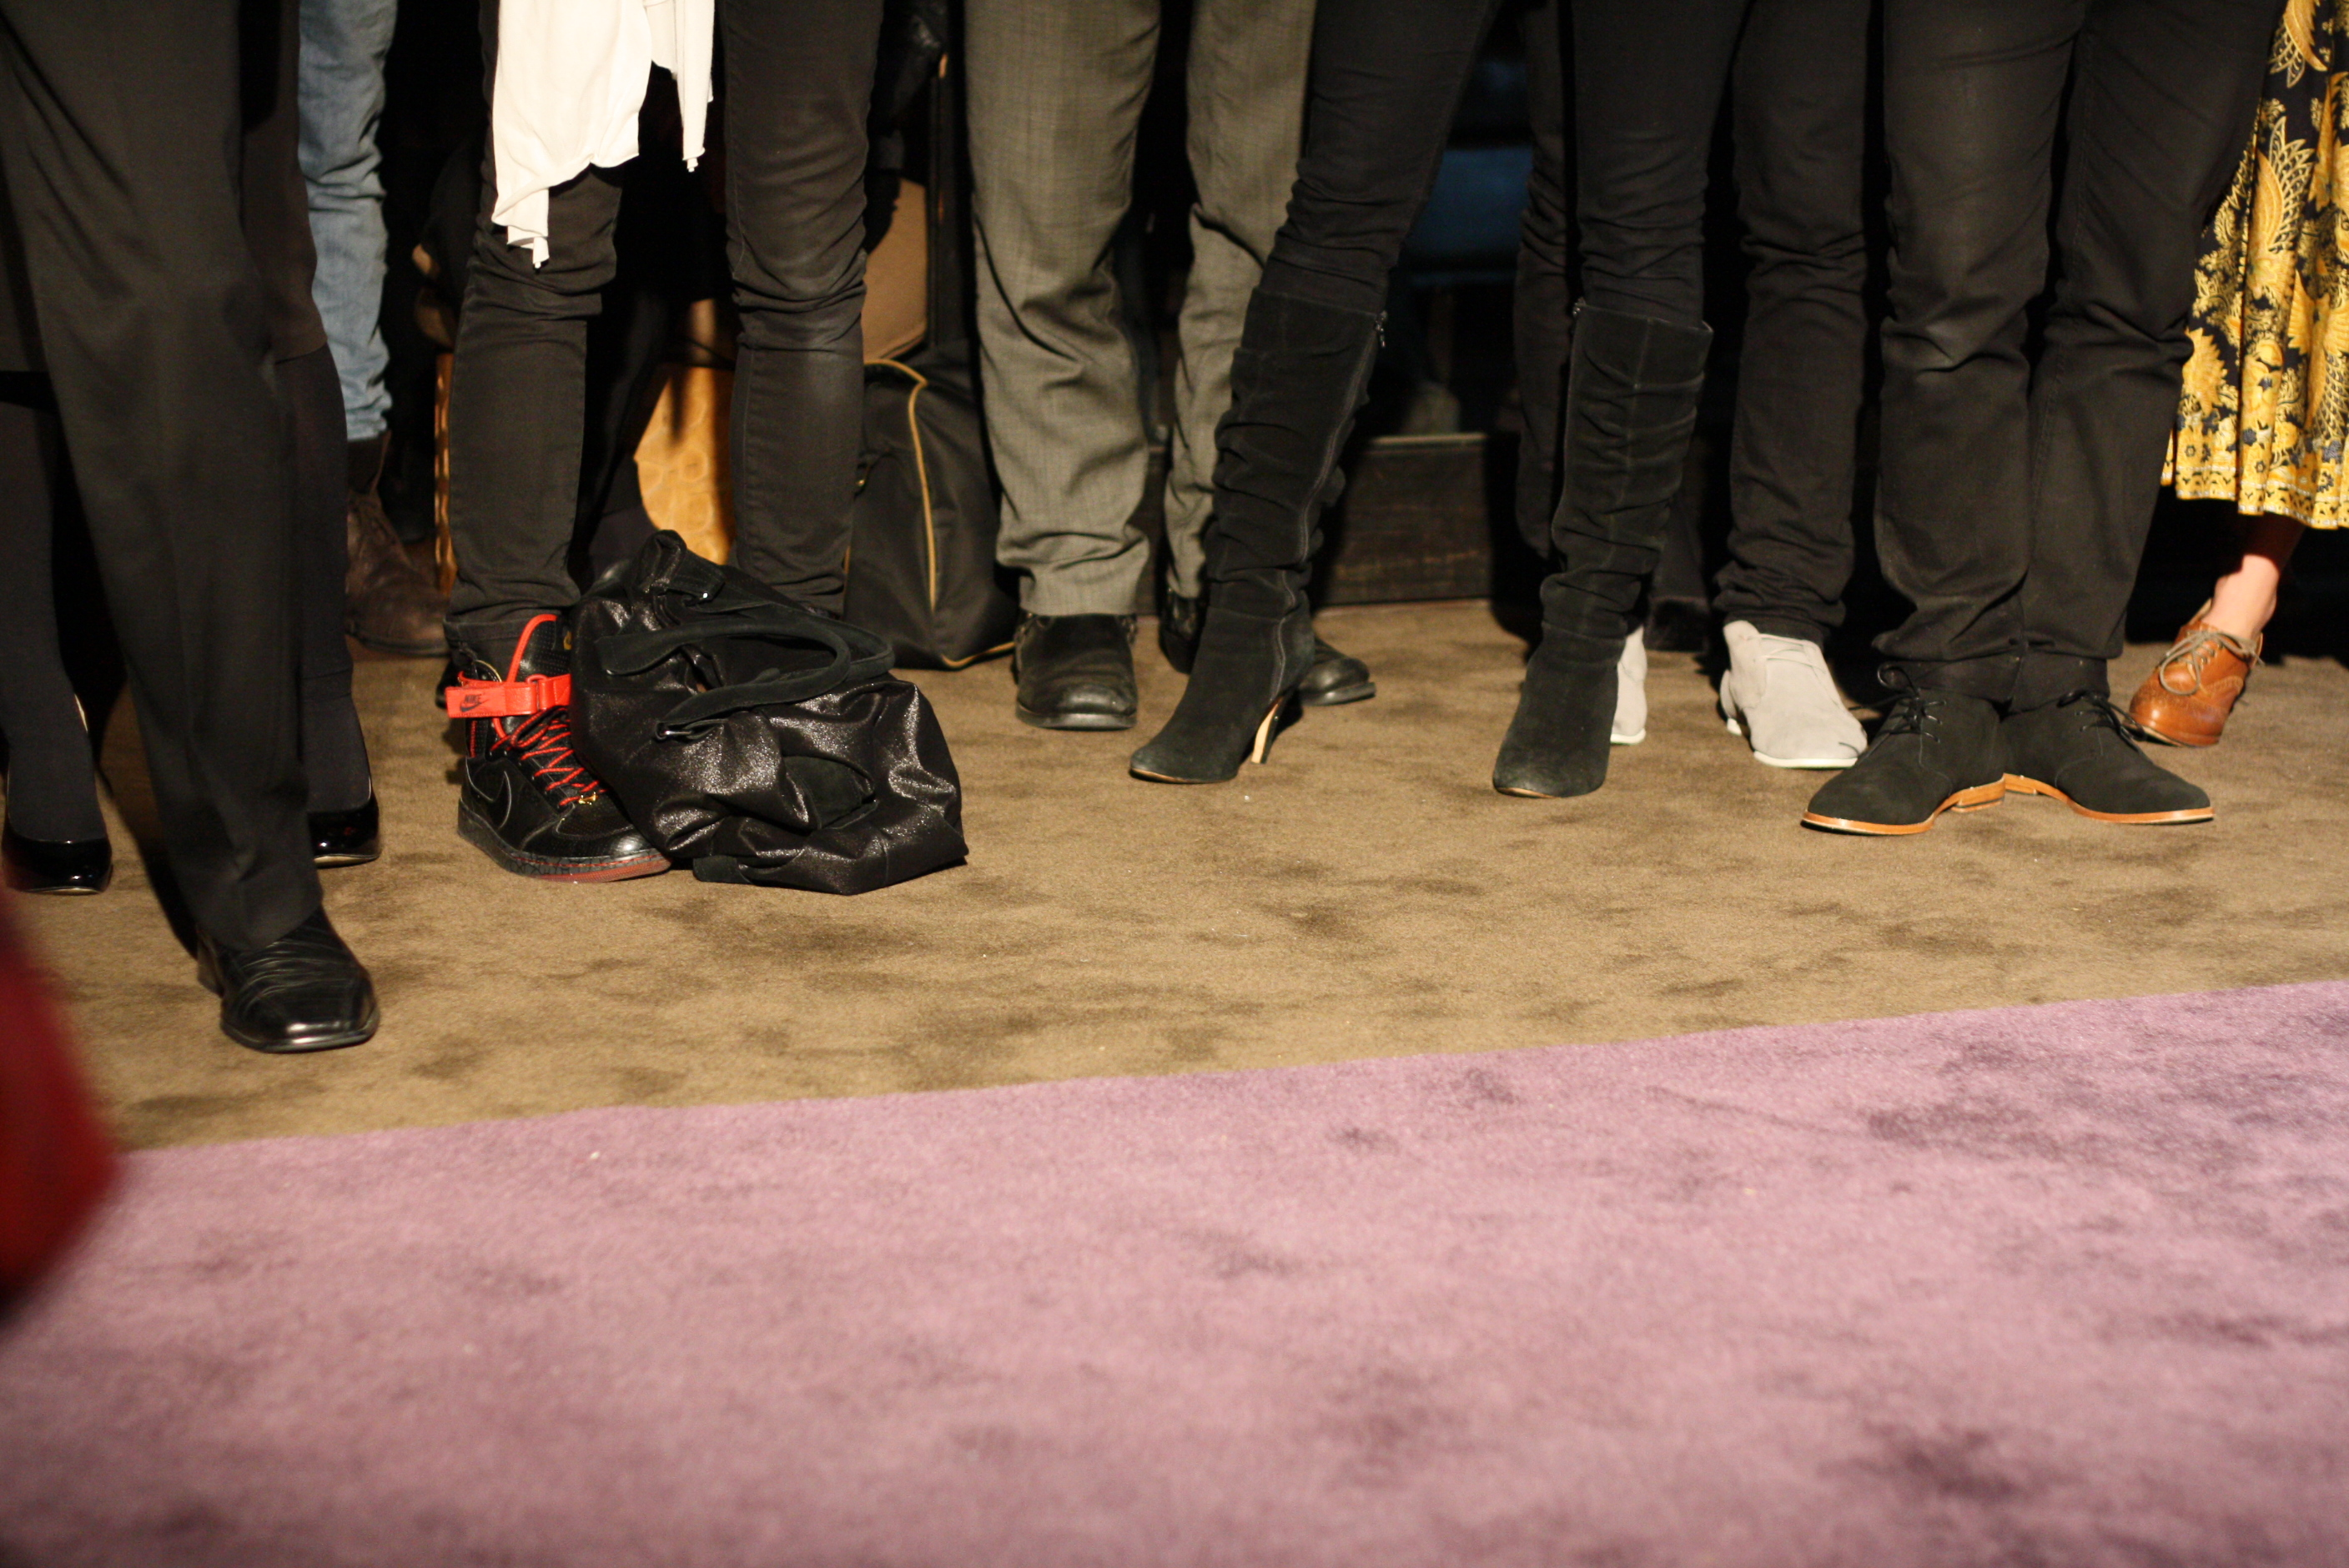 Shot of shoes of audience members.